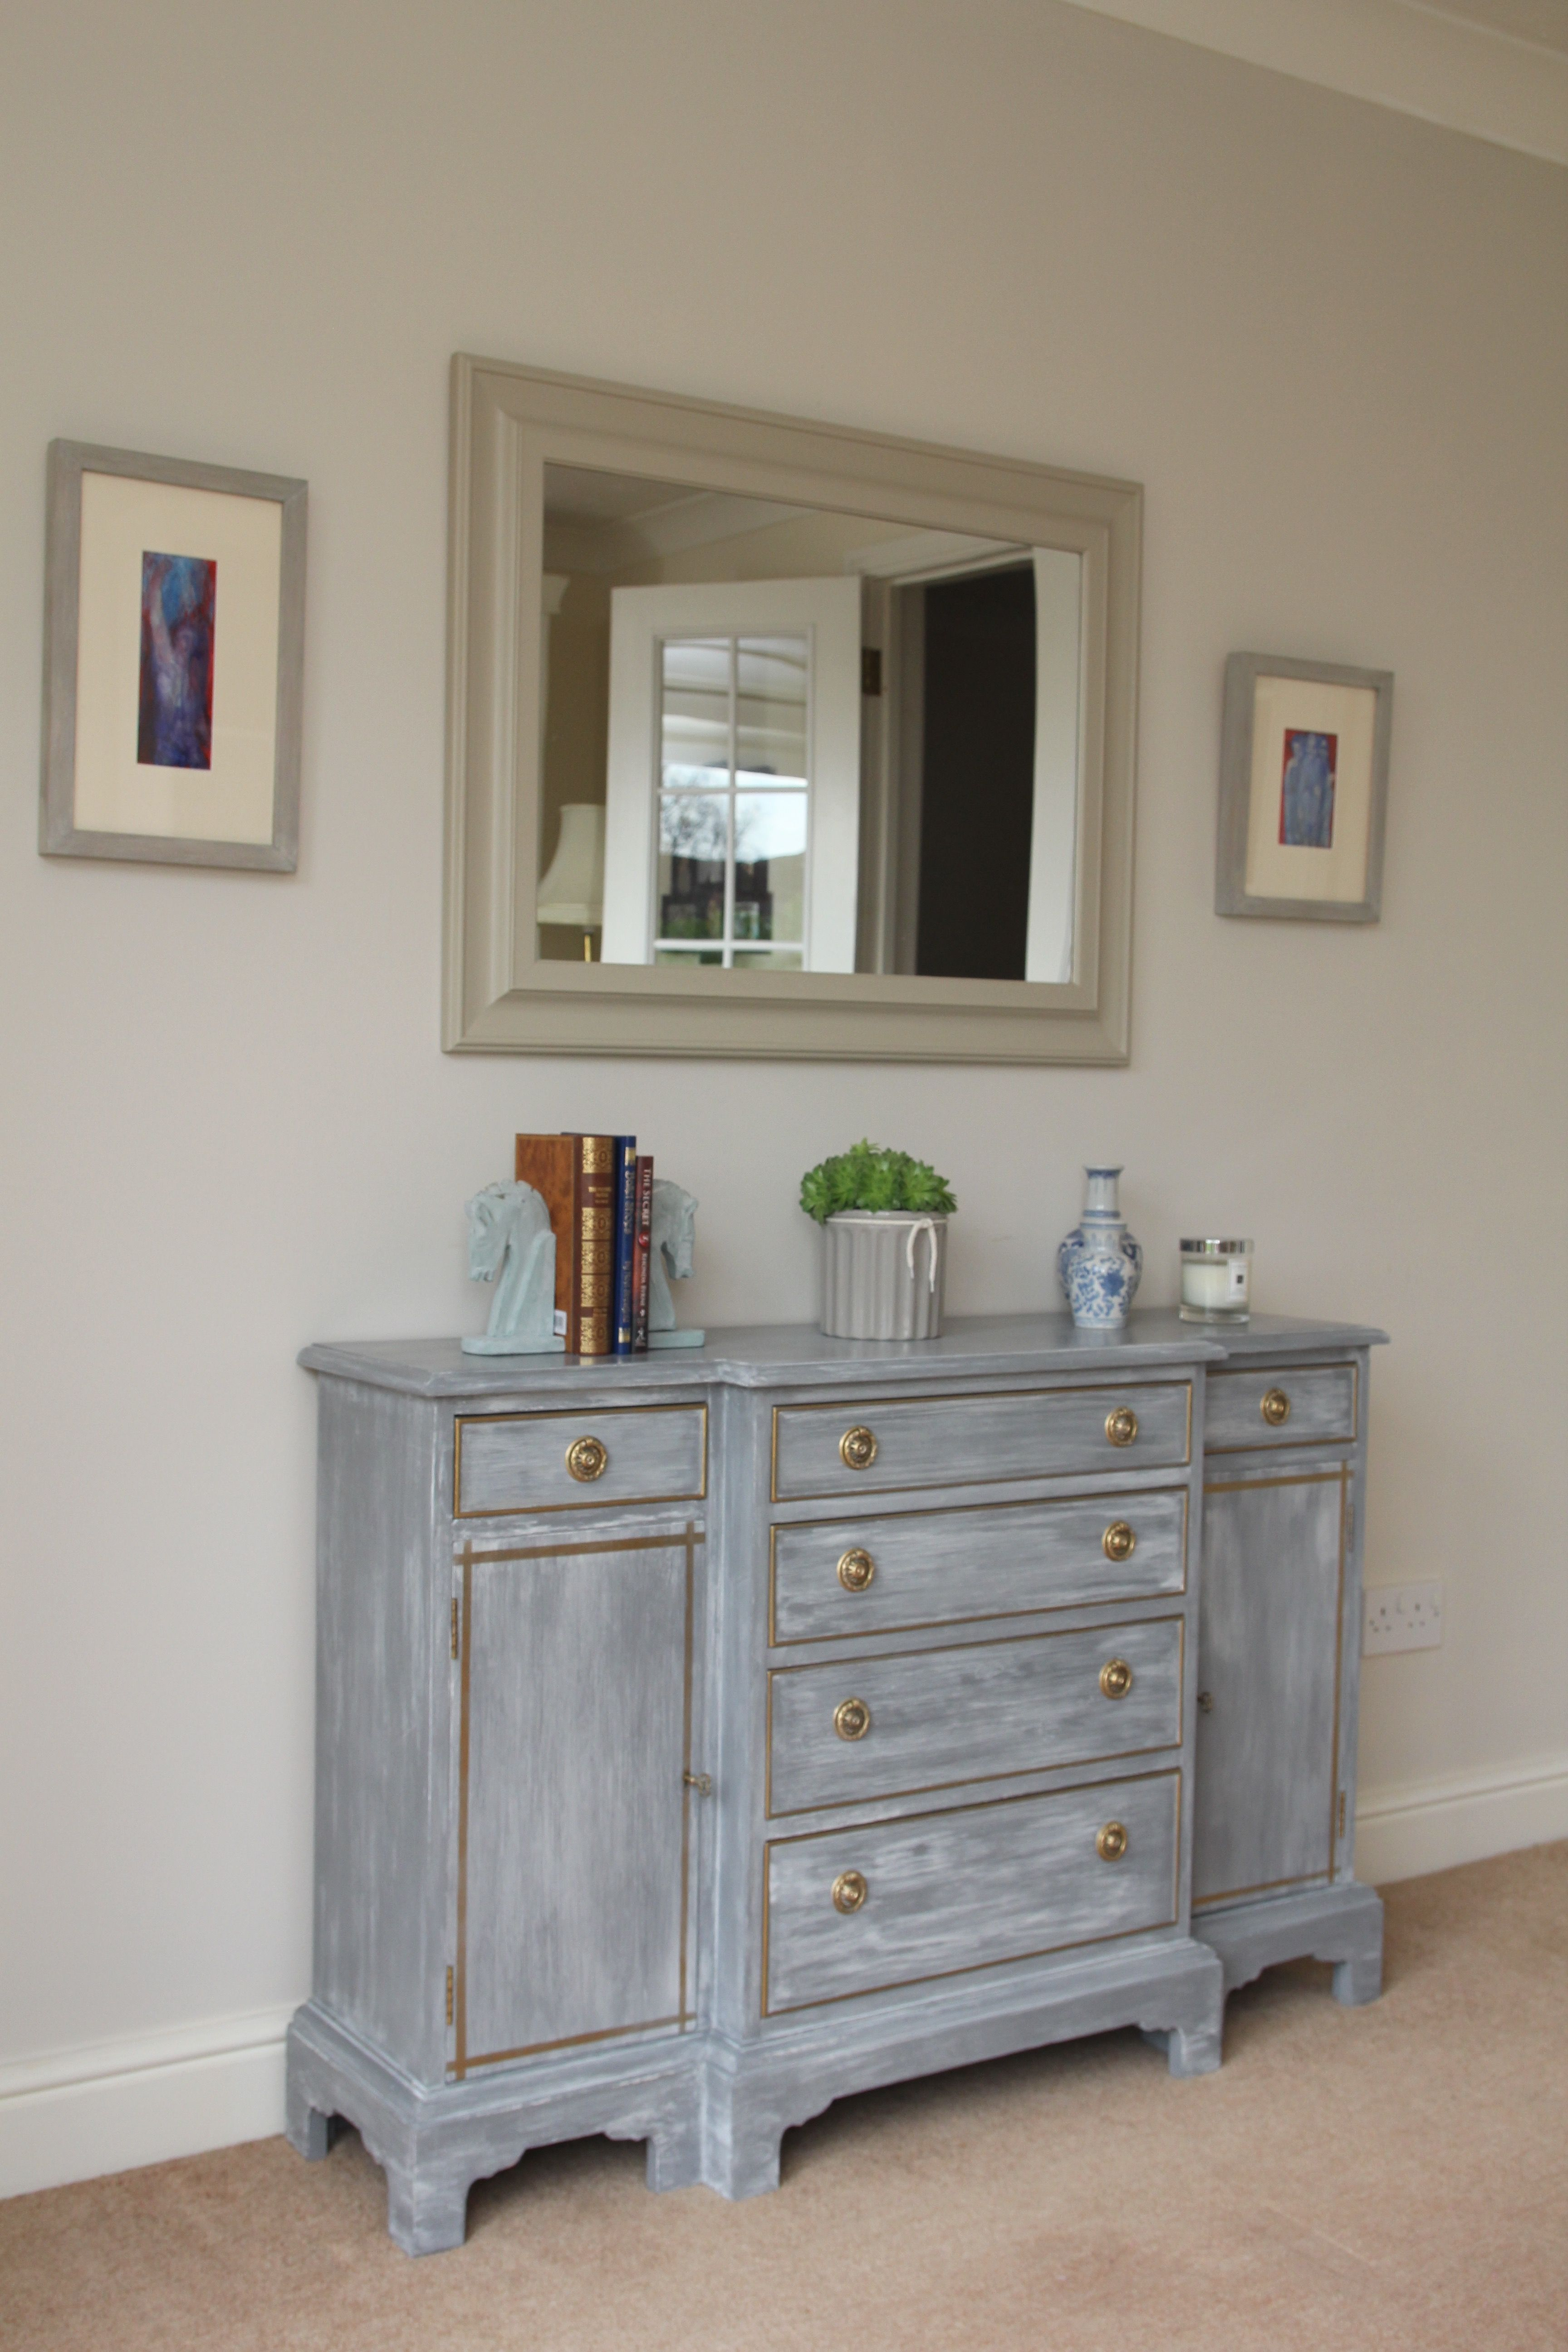 Dresser Painted With Chalk Paint Chalky White Over Anthracite Then Rub N Buff For Trim And Handles